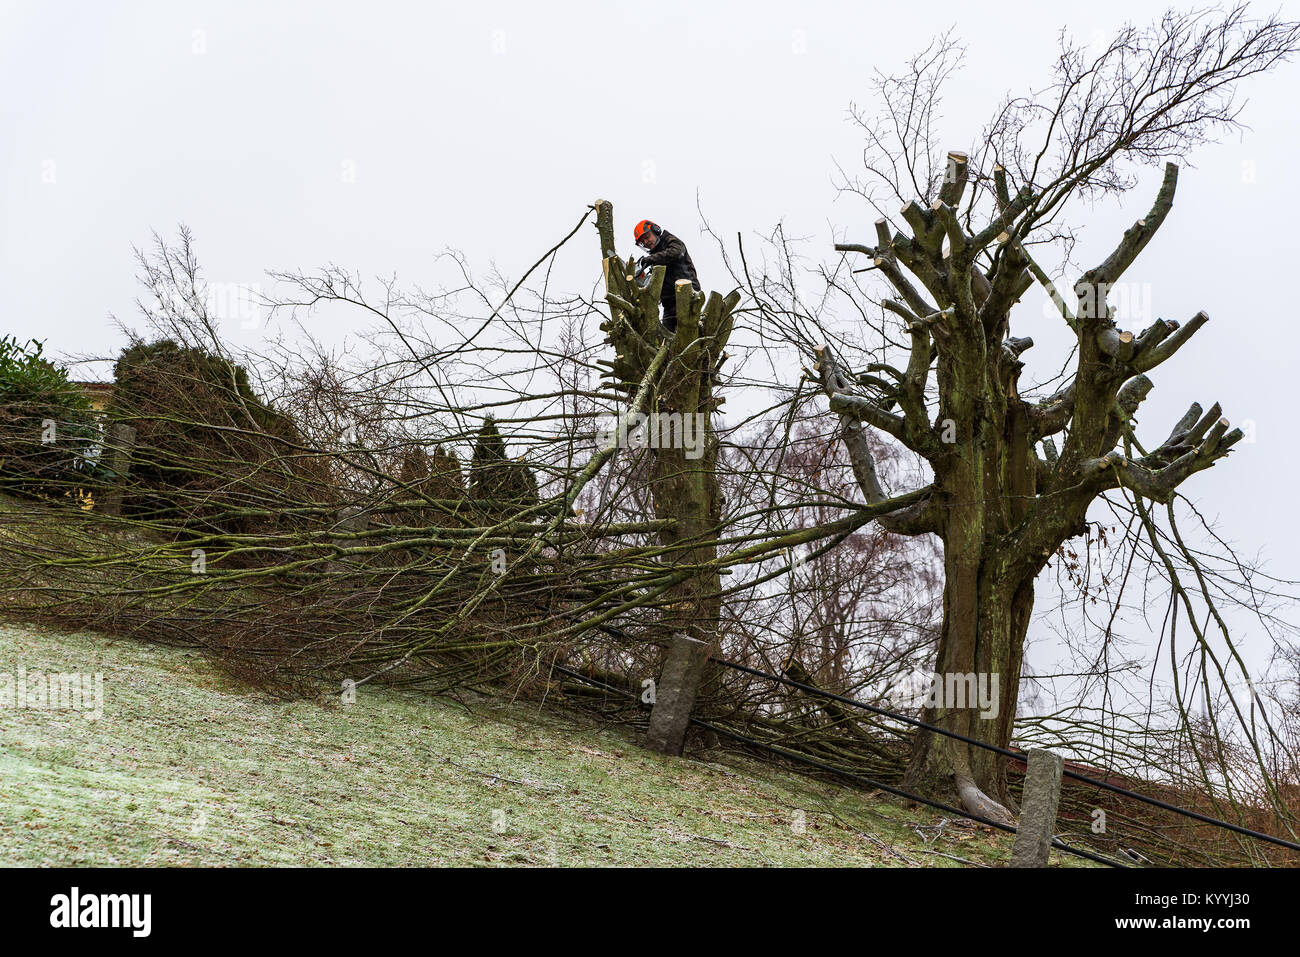 Morrum, Sweden - January 8, 2018: Documentary of everyday life and environment. Arborist high up in a tree on a - Stock Image